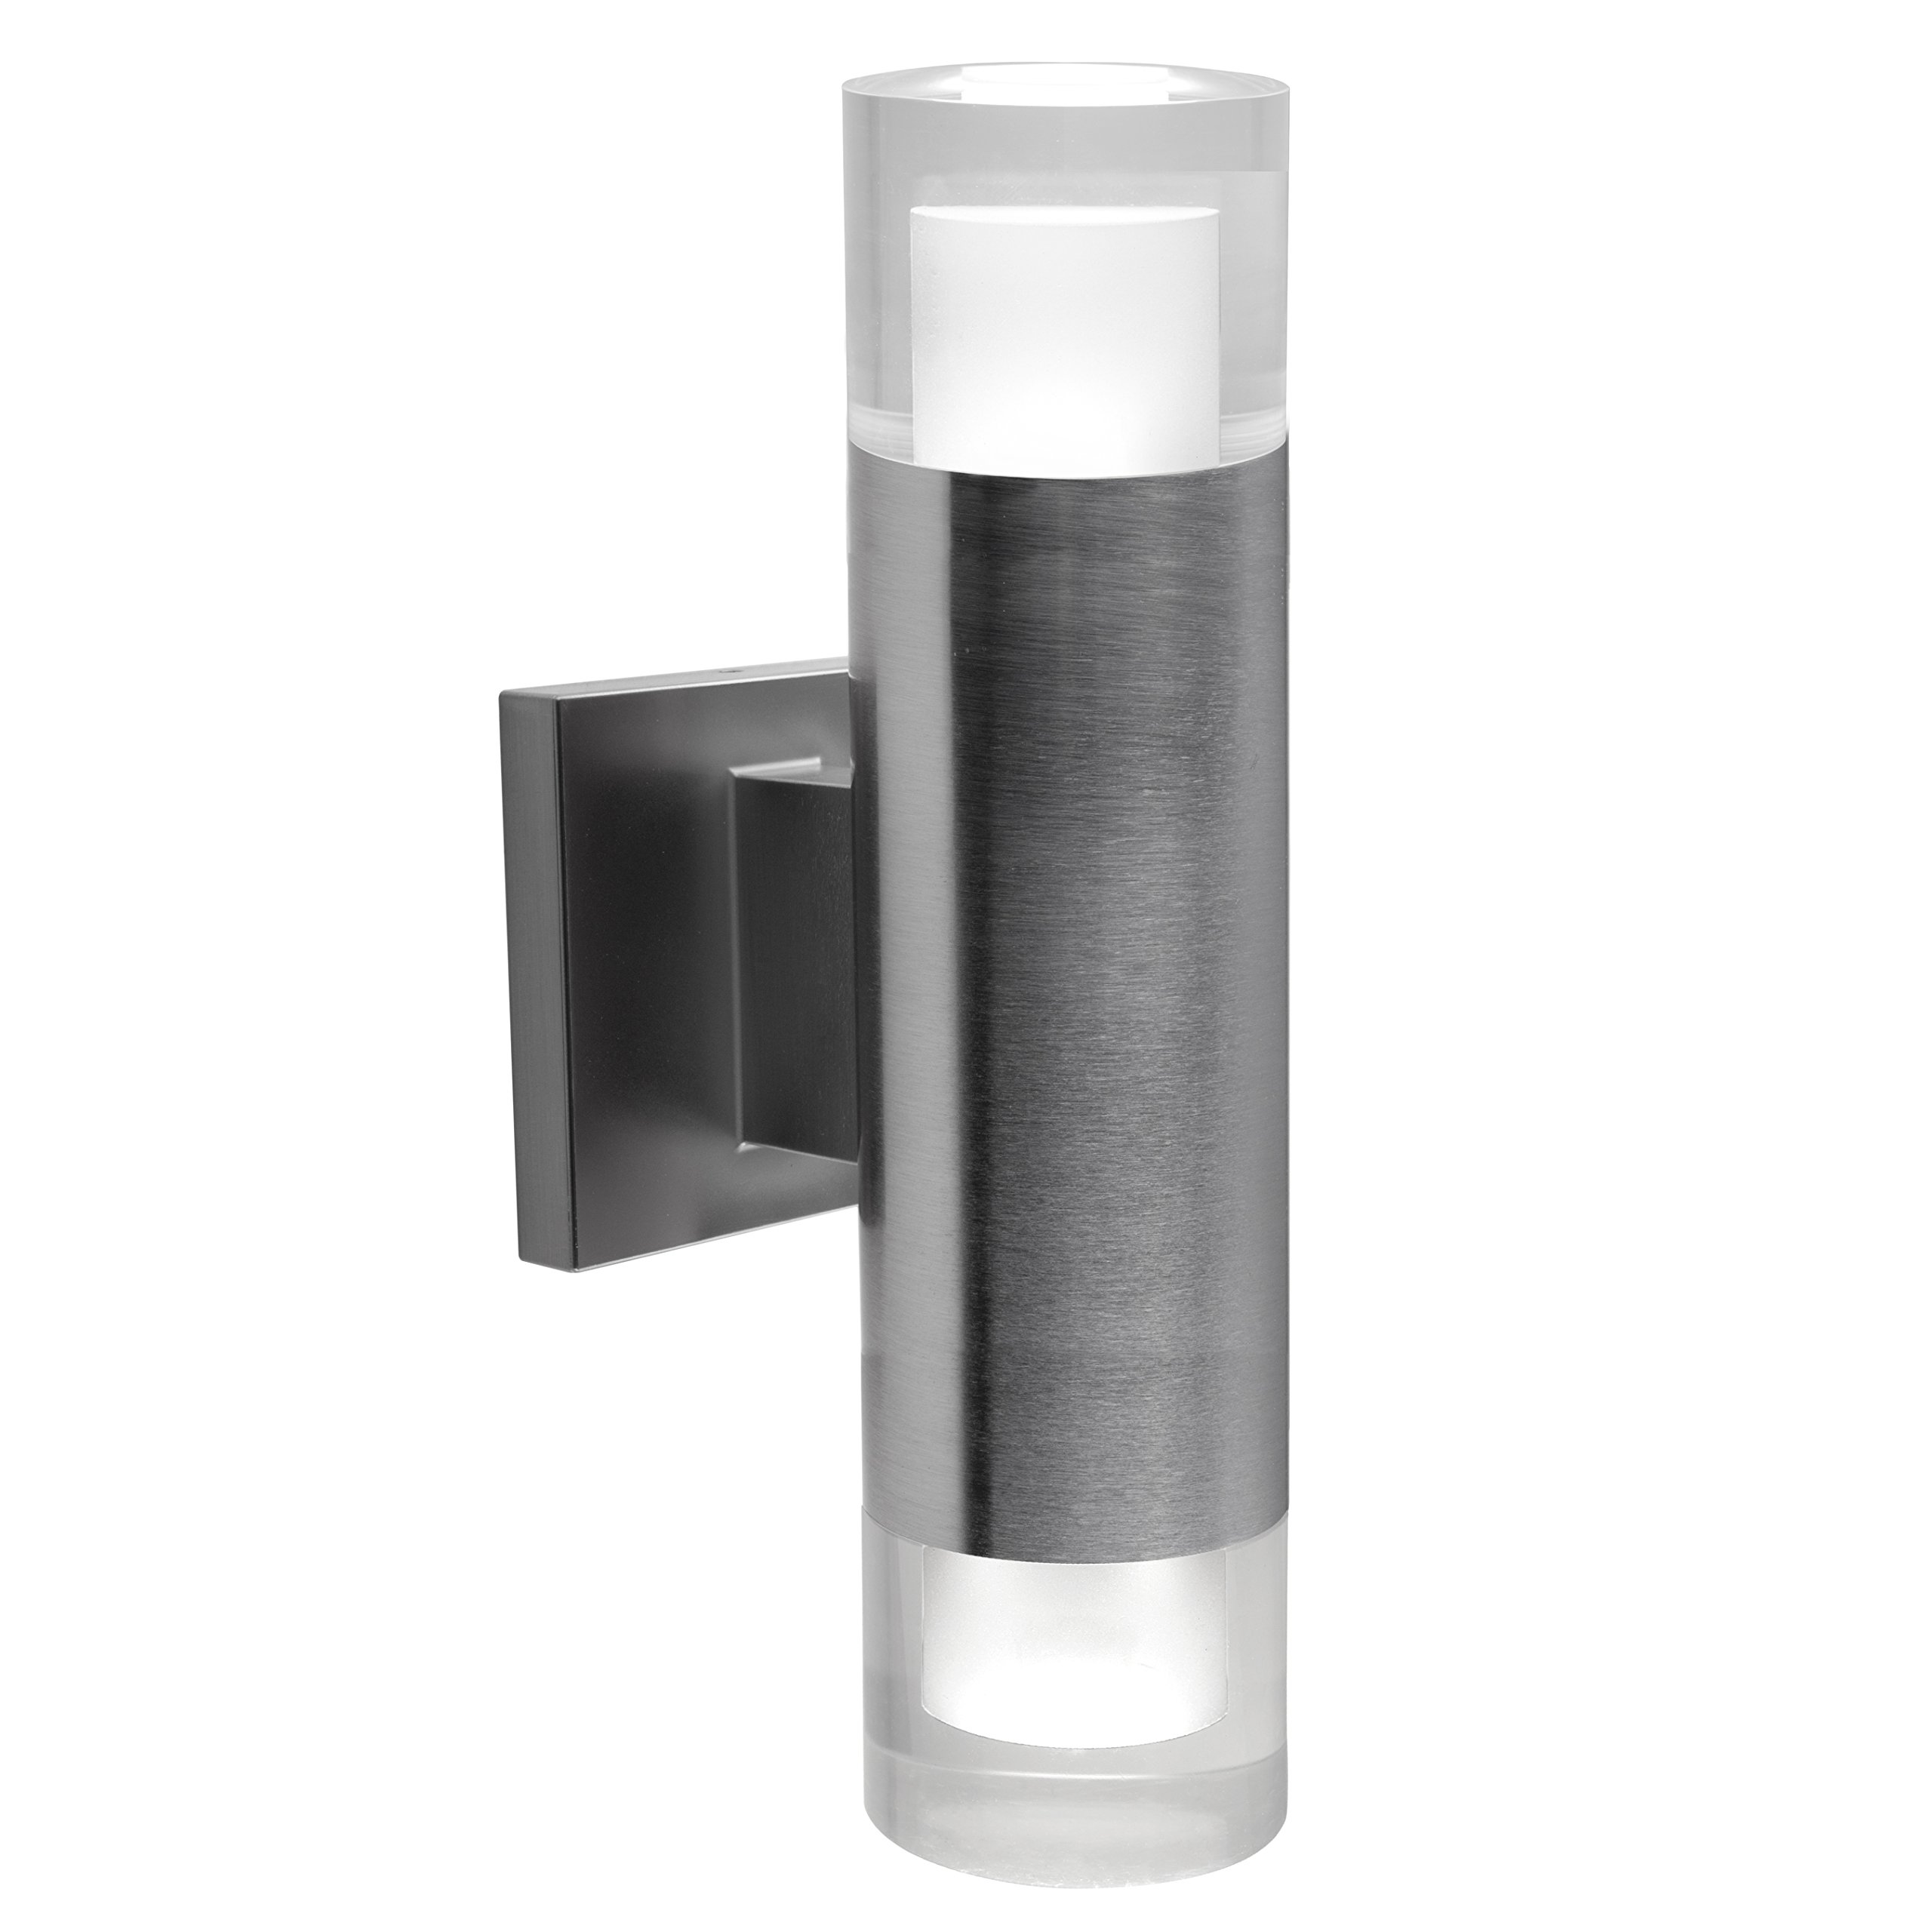 Bazz W16639SS Outdoor Wall Fixture, Stainless Steel